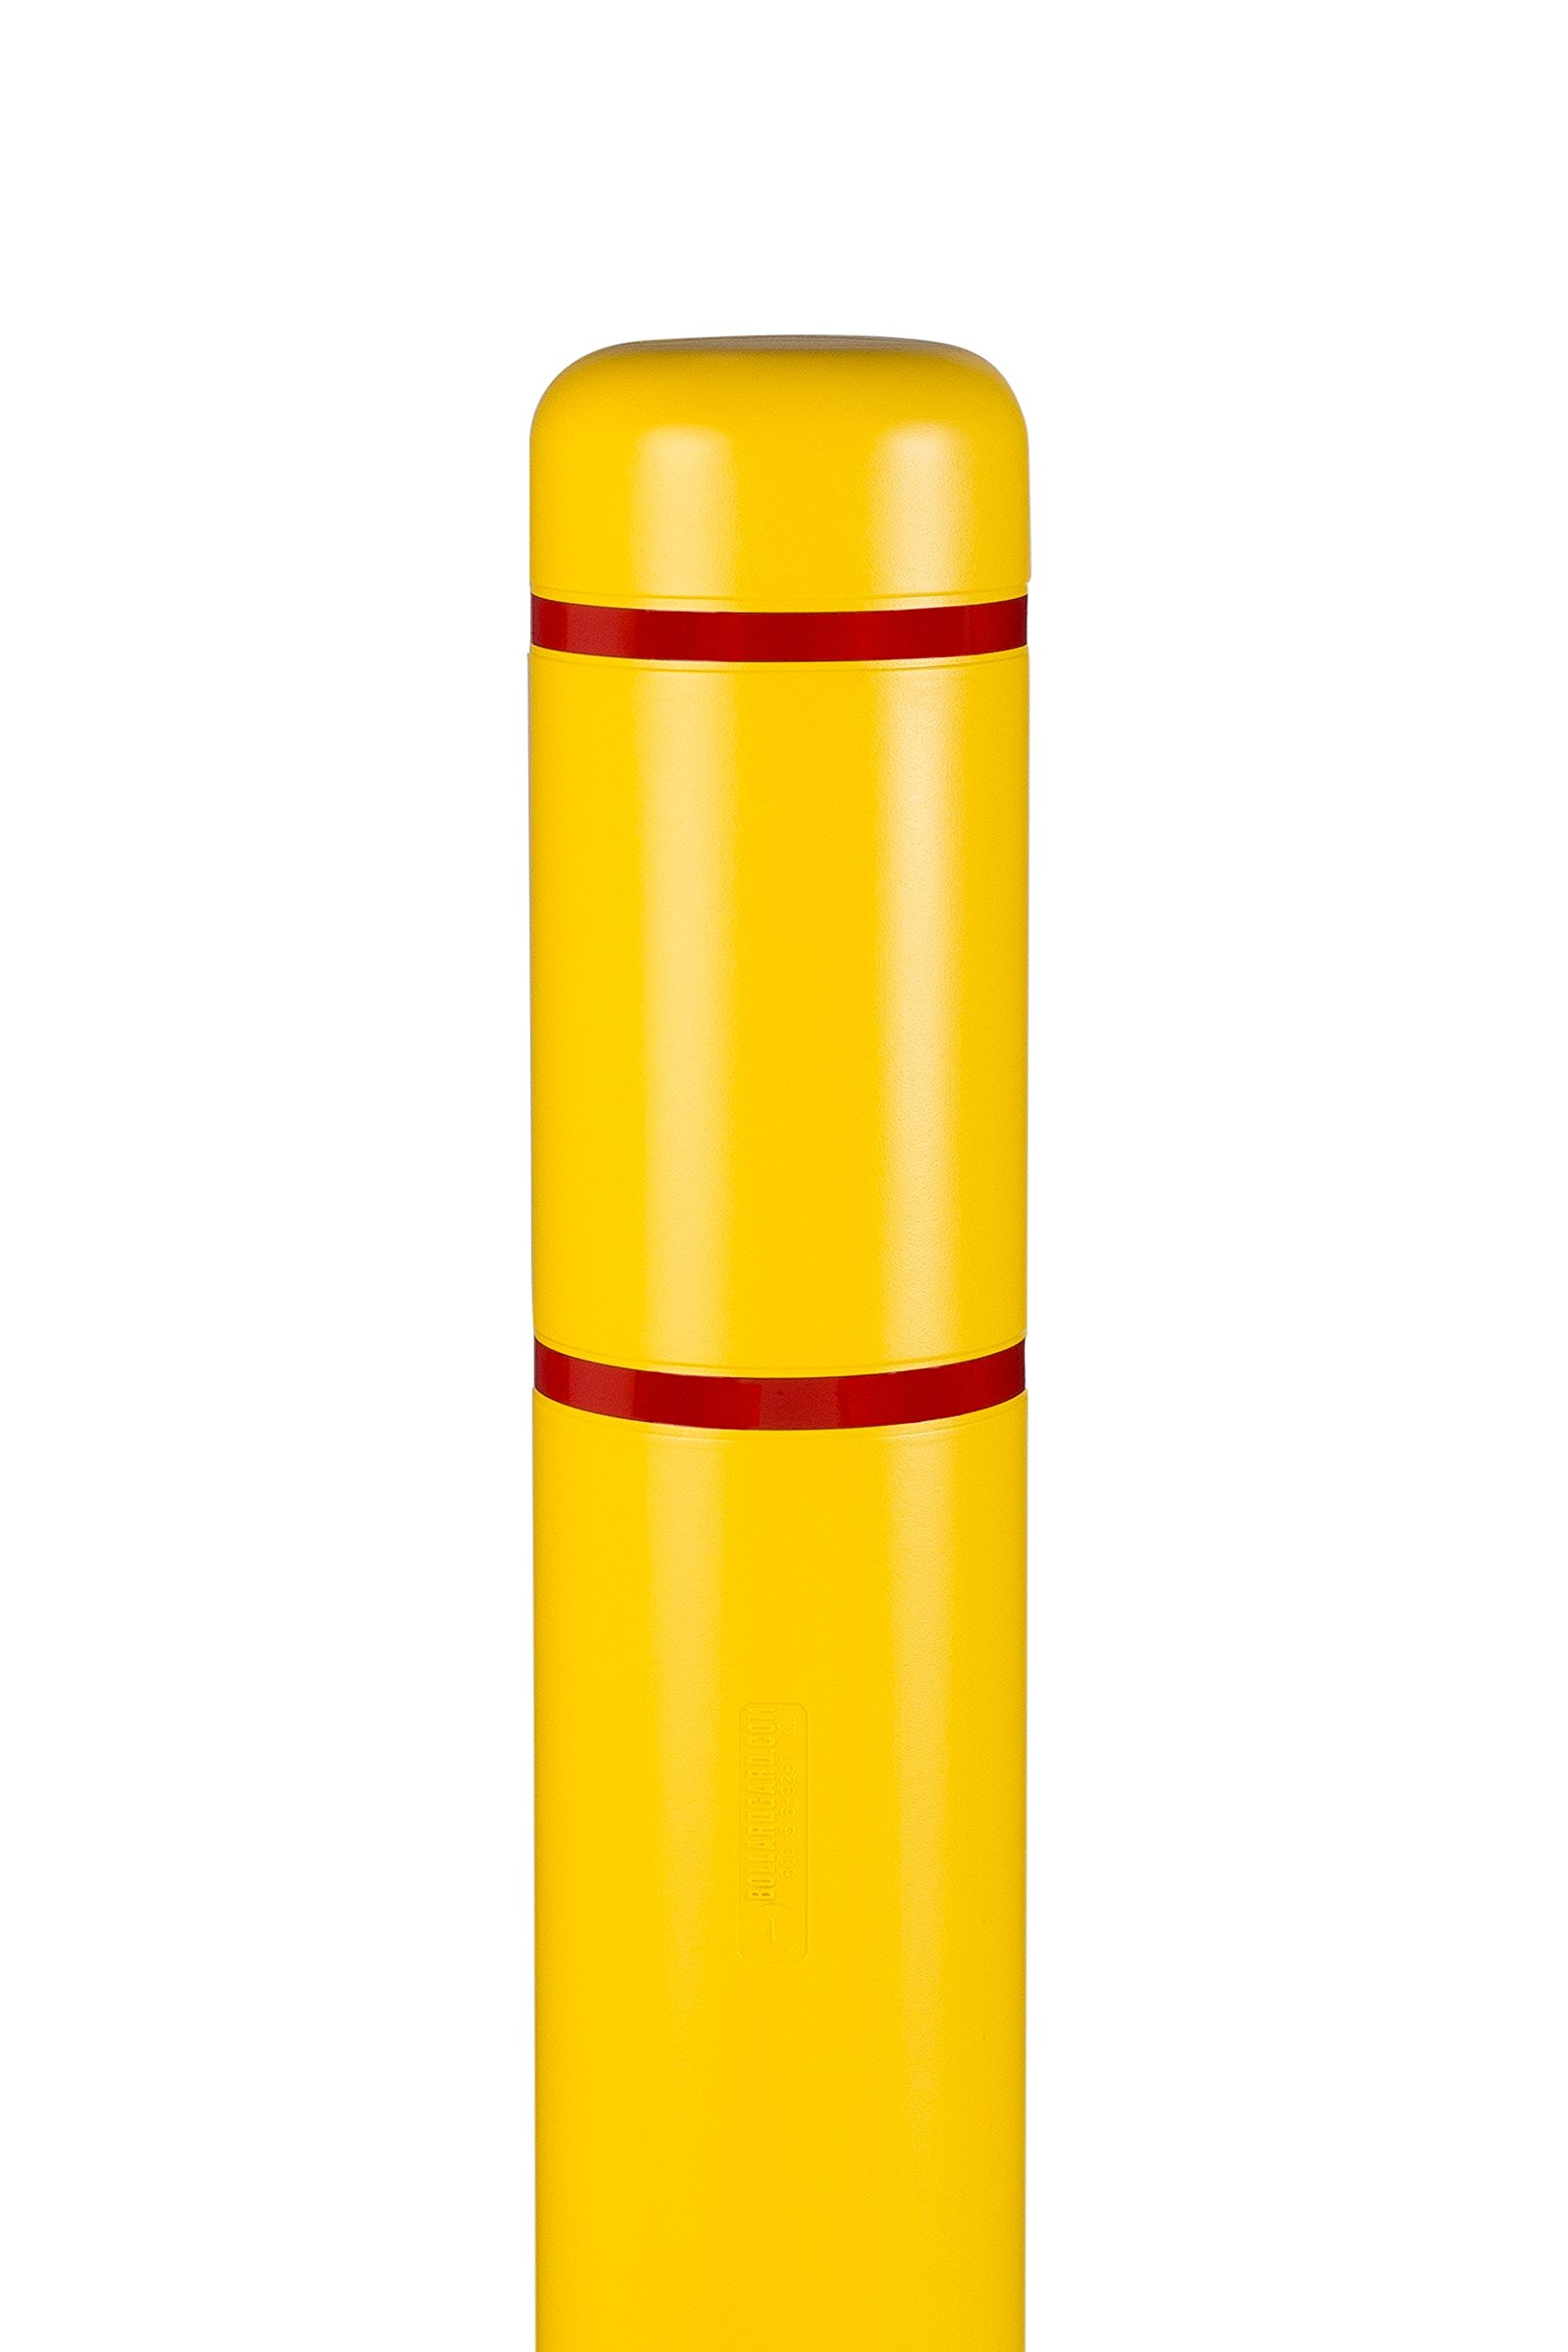 Innoplast 7'' x 52'' (7.1'' ID) Bollard Cover Yellow with Red Reflective